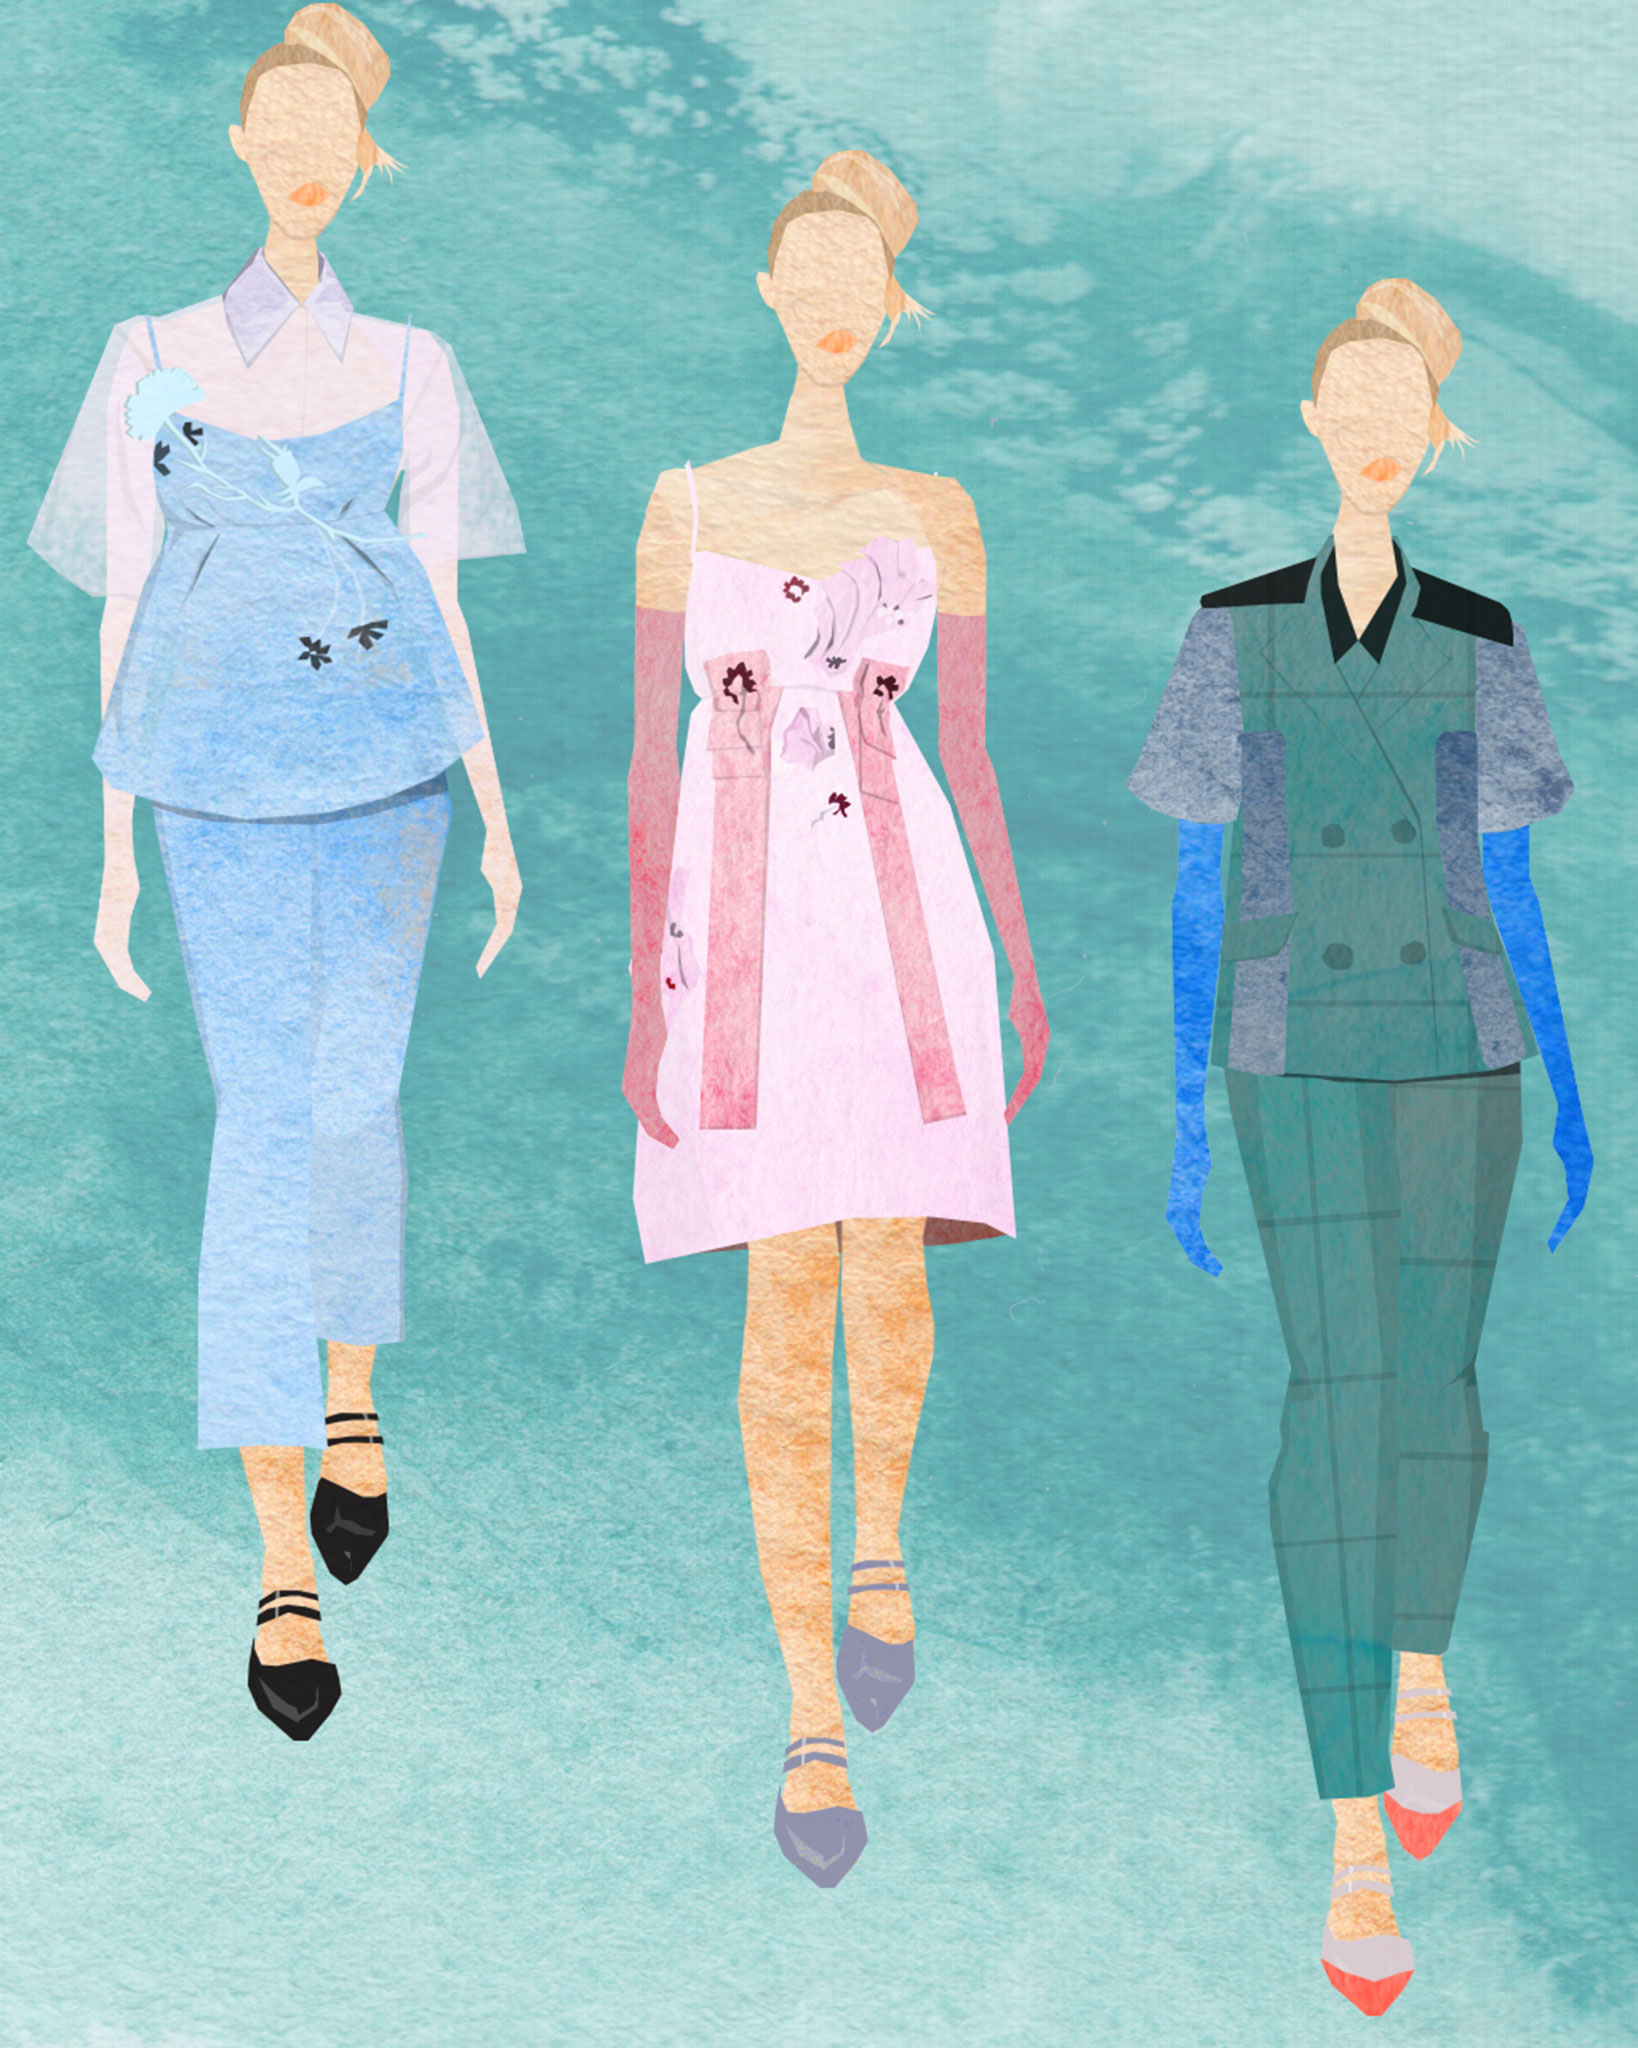 tram nguyen prada aw15 illustration